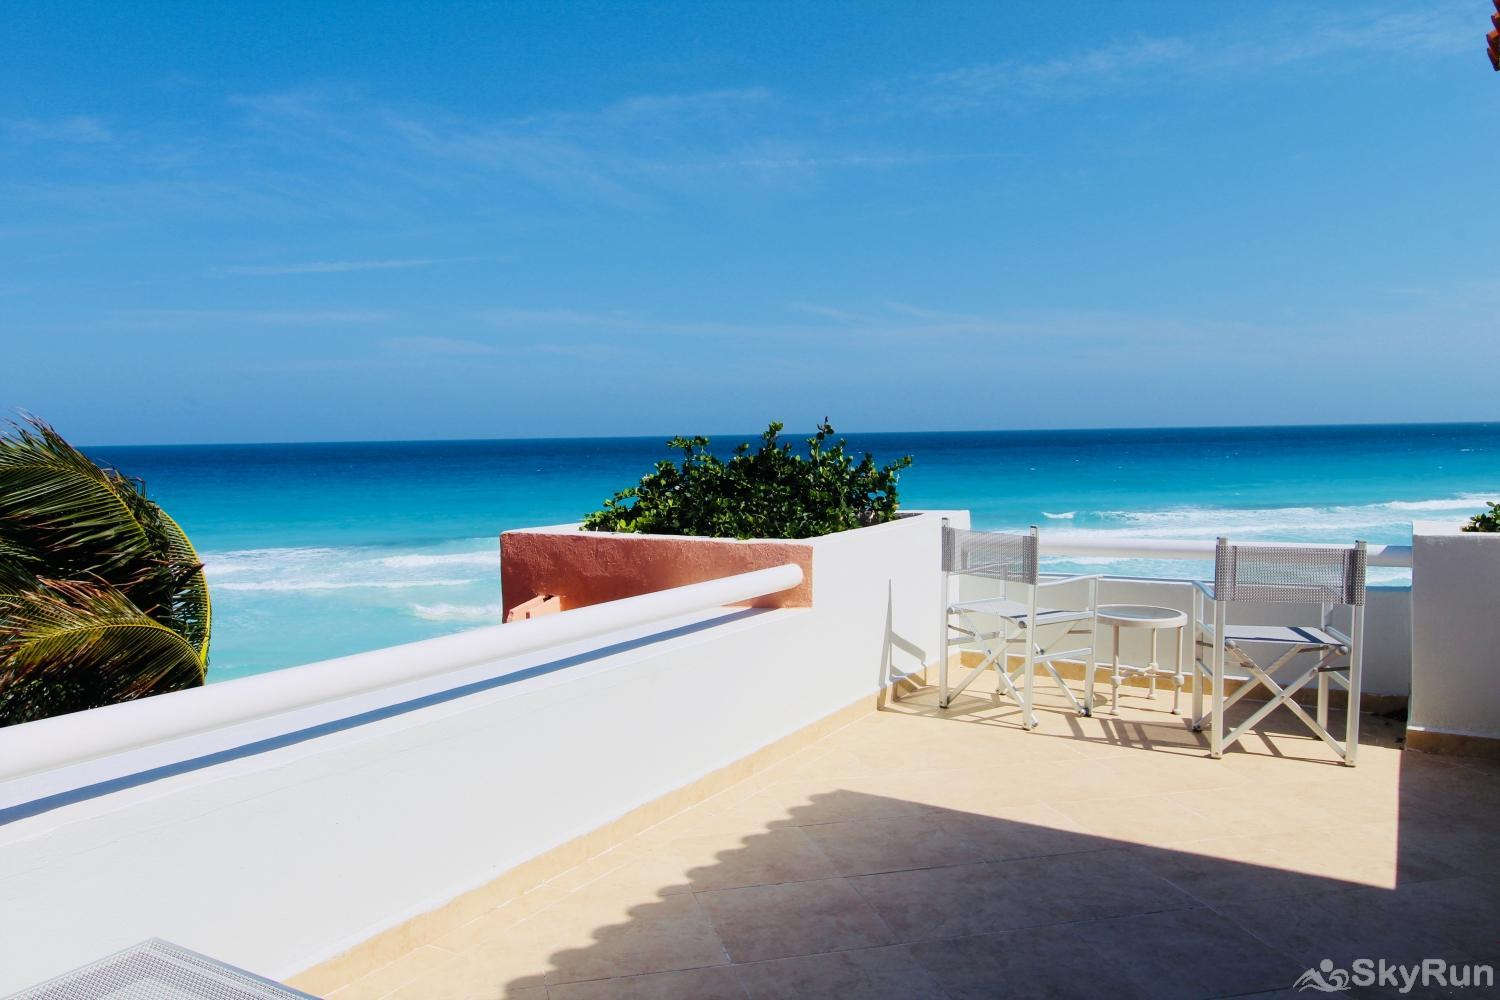 Best Beachfront Private Villa , 4Bdr | Omni Cancun Hotel and Villas PRME location Resort Kinich Villa 33 View from 3rd Floor Master